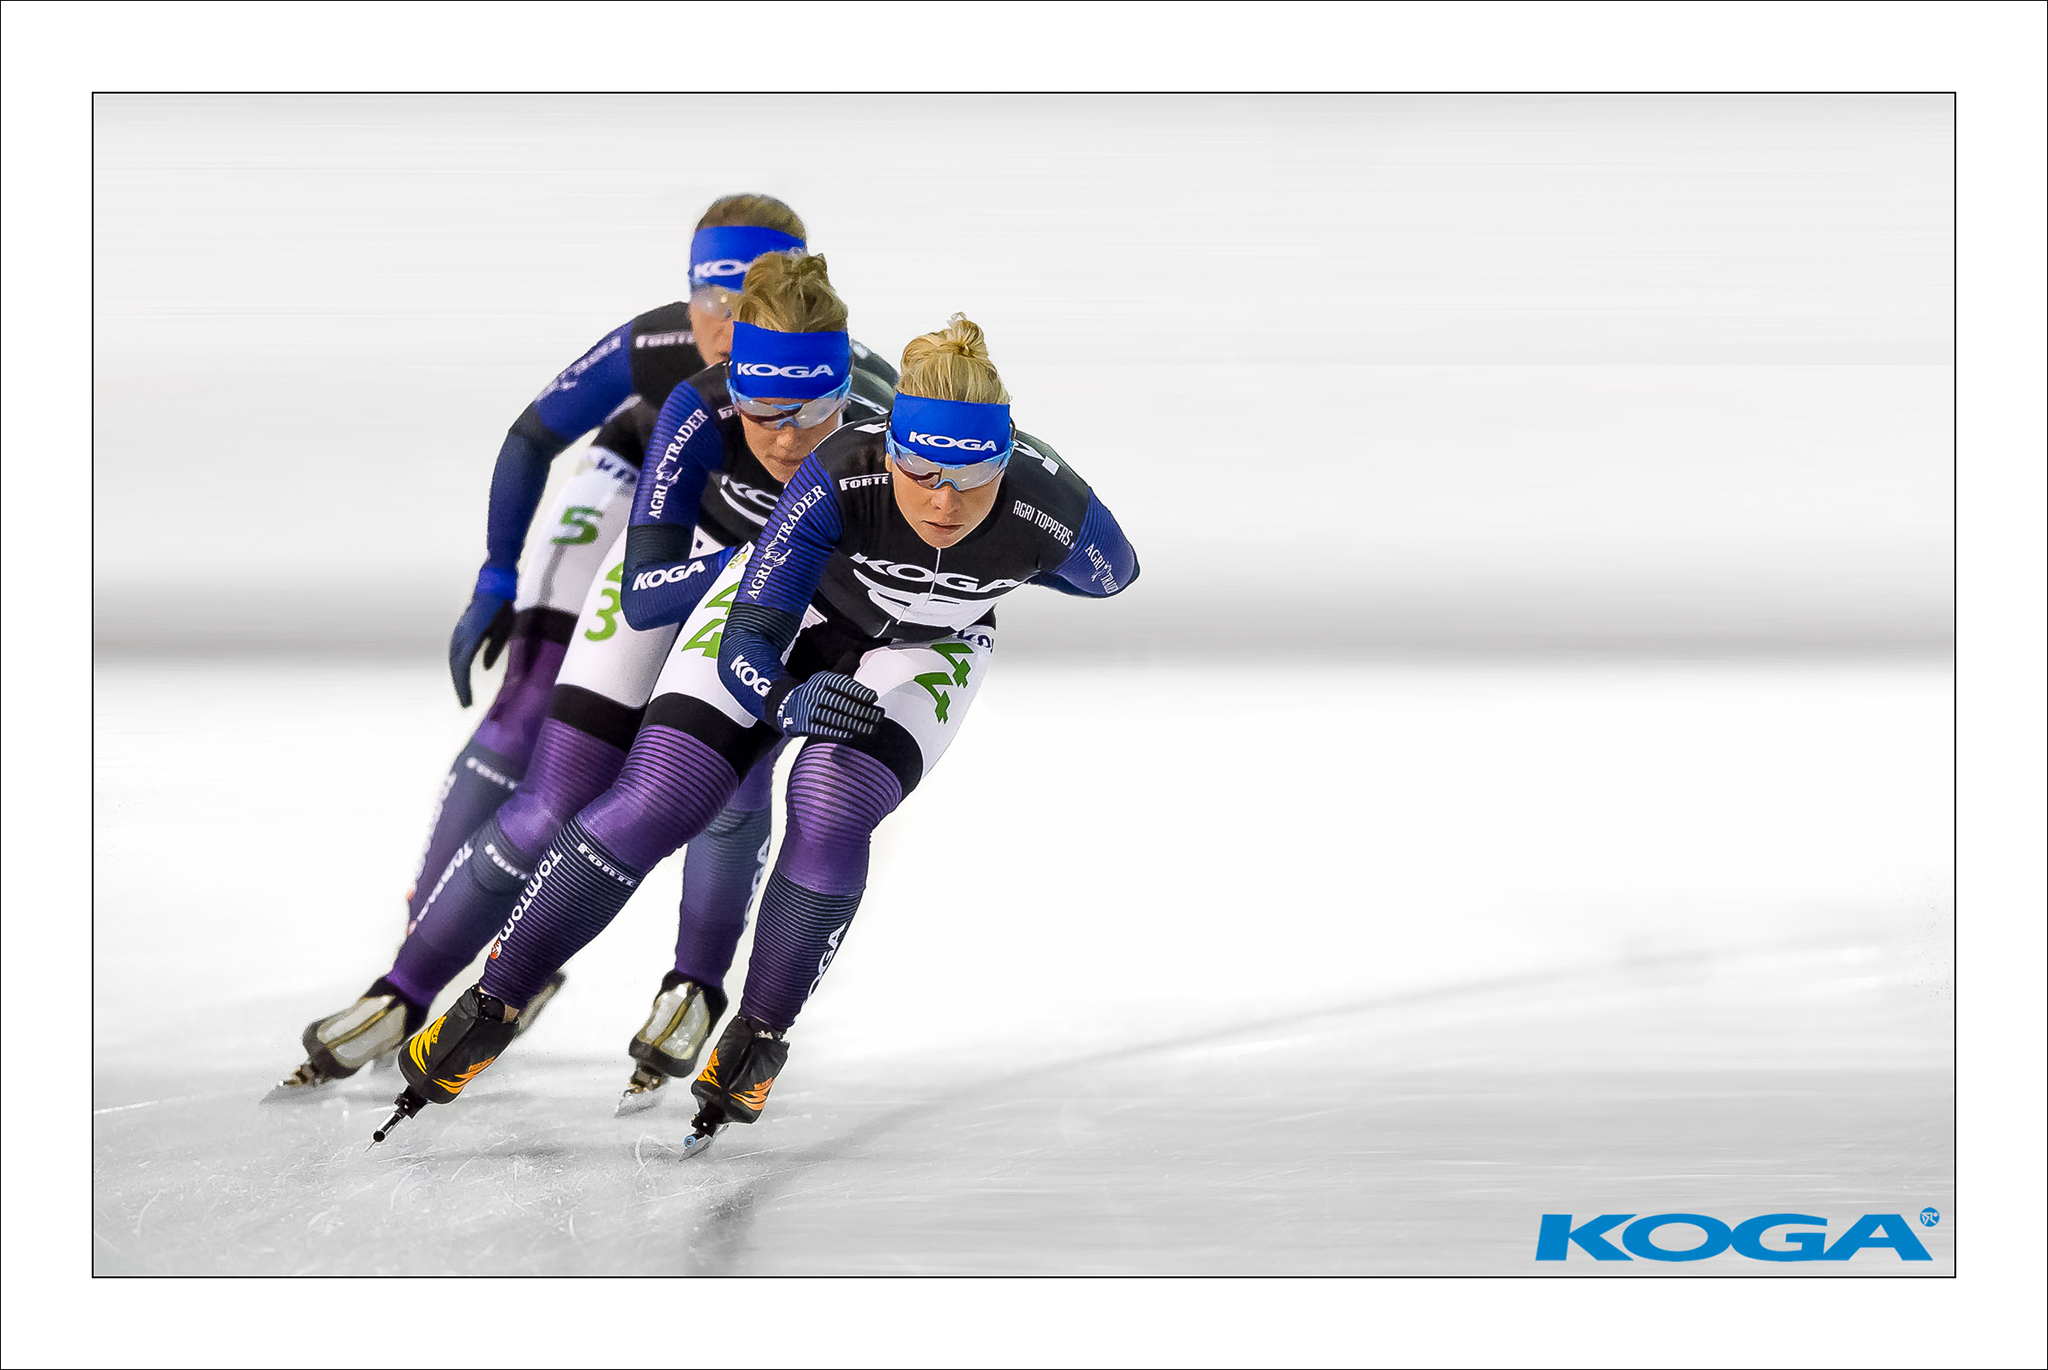 KOGA speedskating team